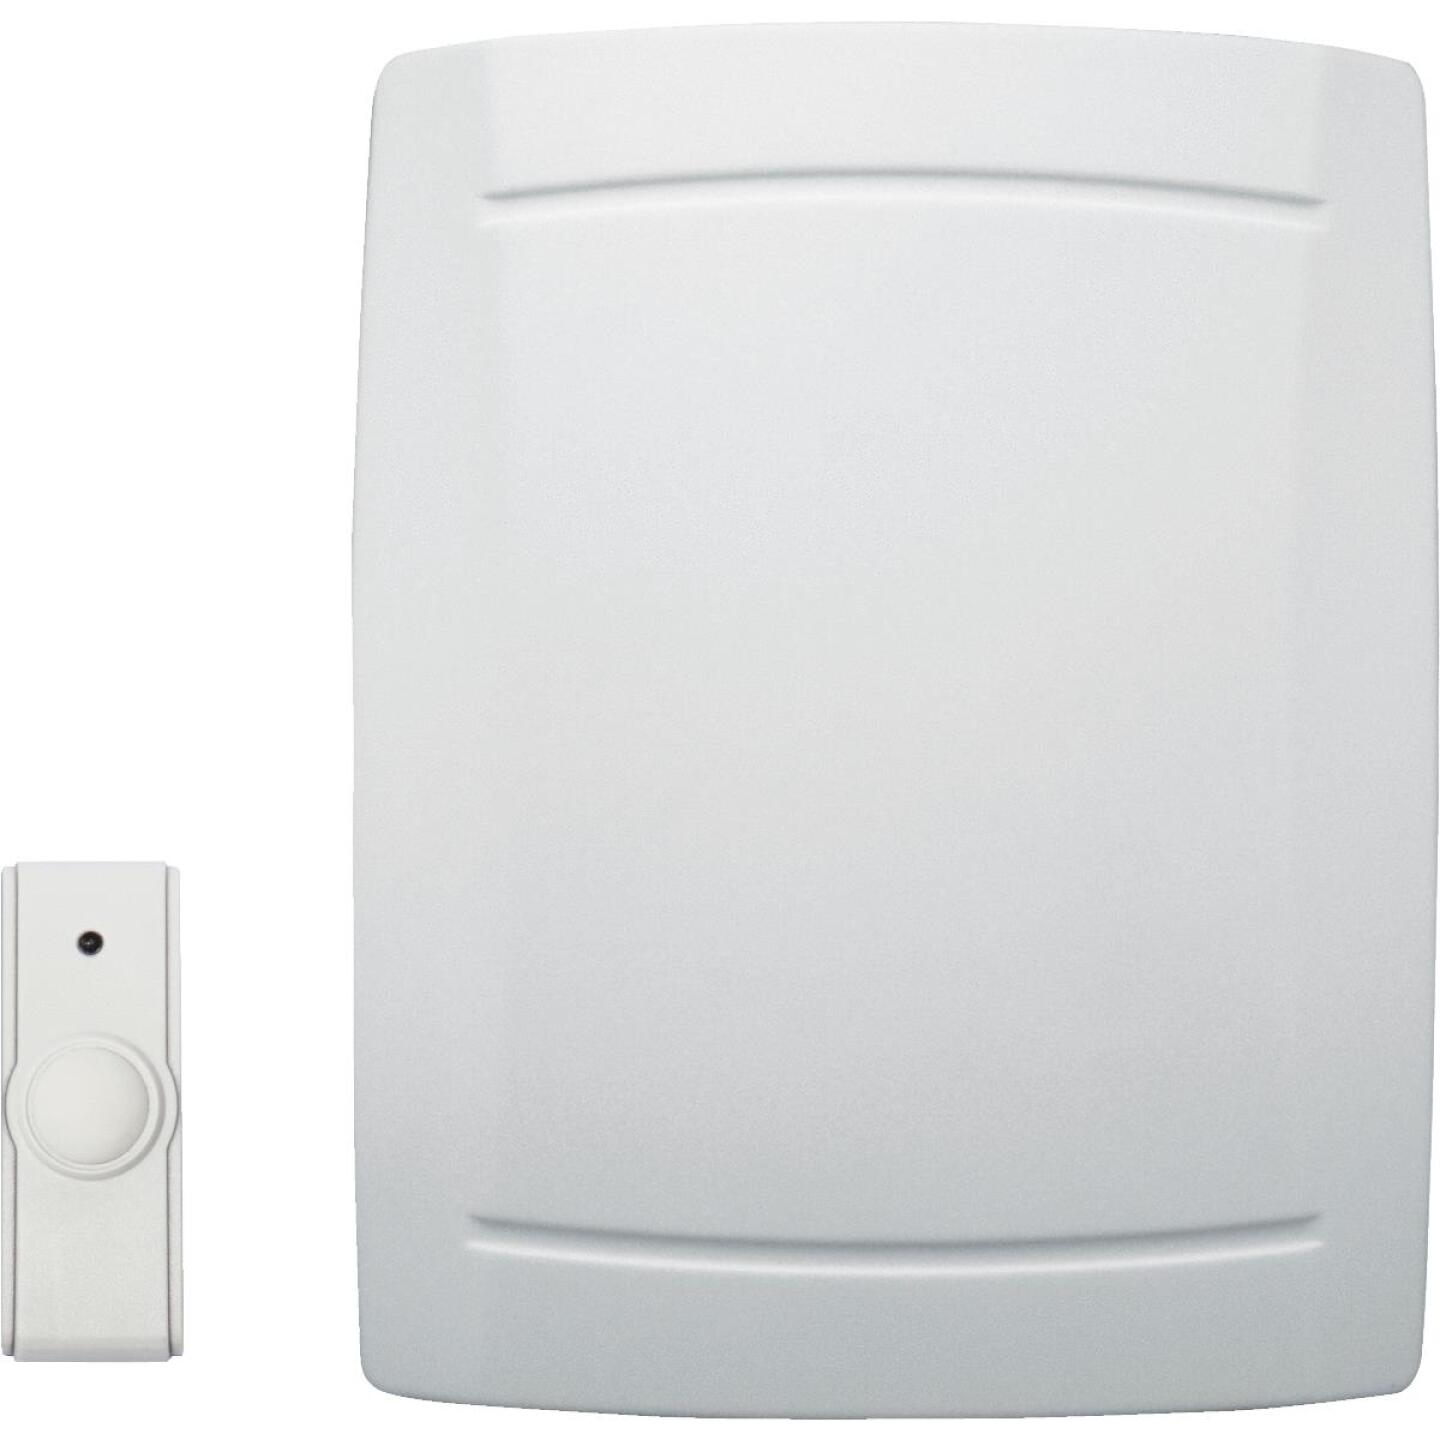 IQ America Step-Up Battery Operated Off-White Wireless Door Chime Image 1